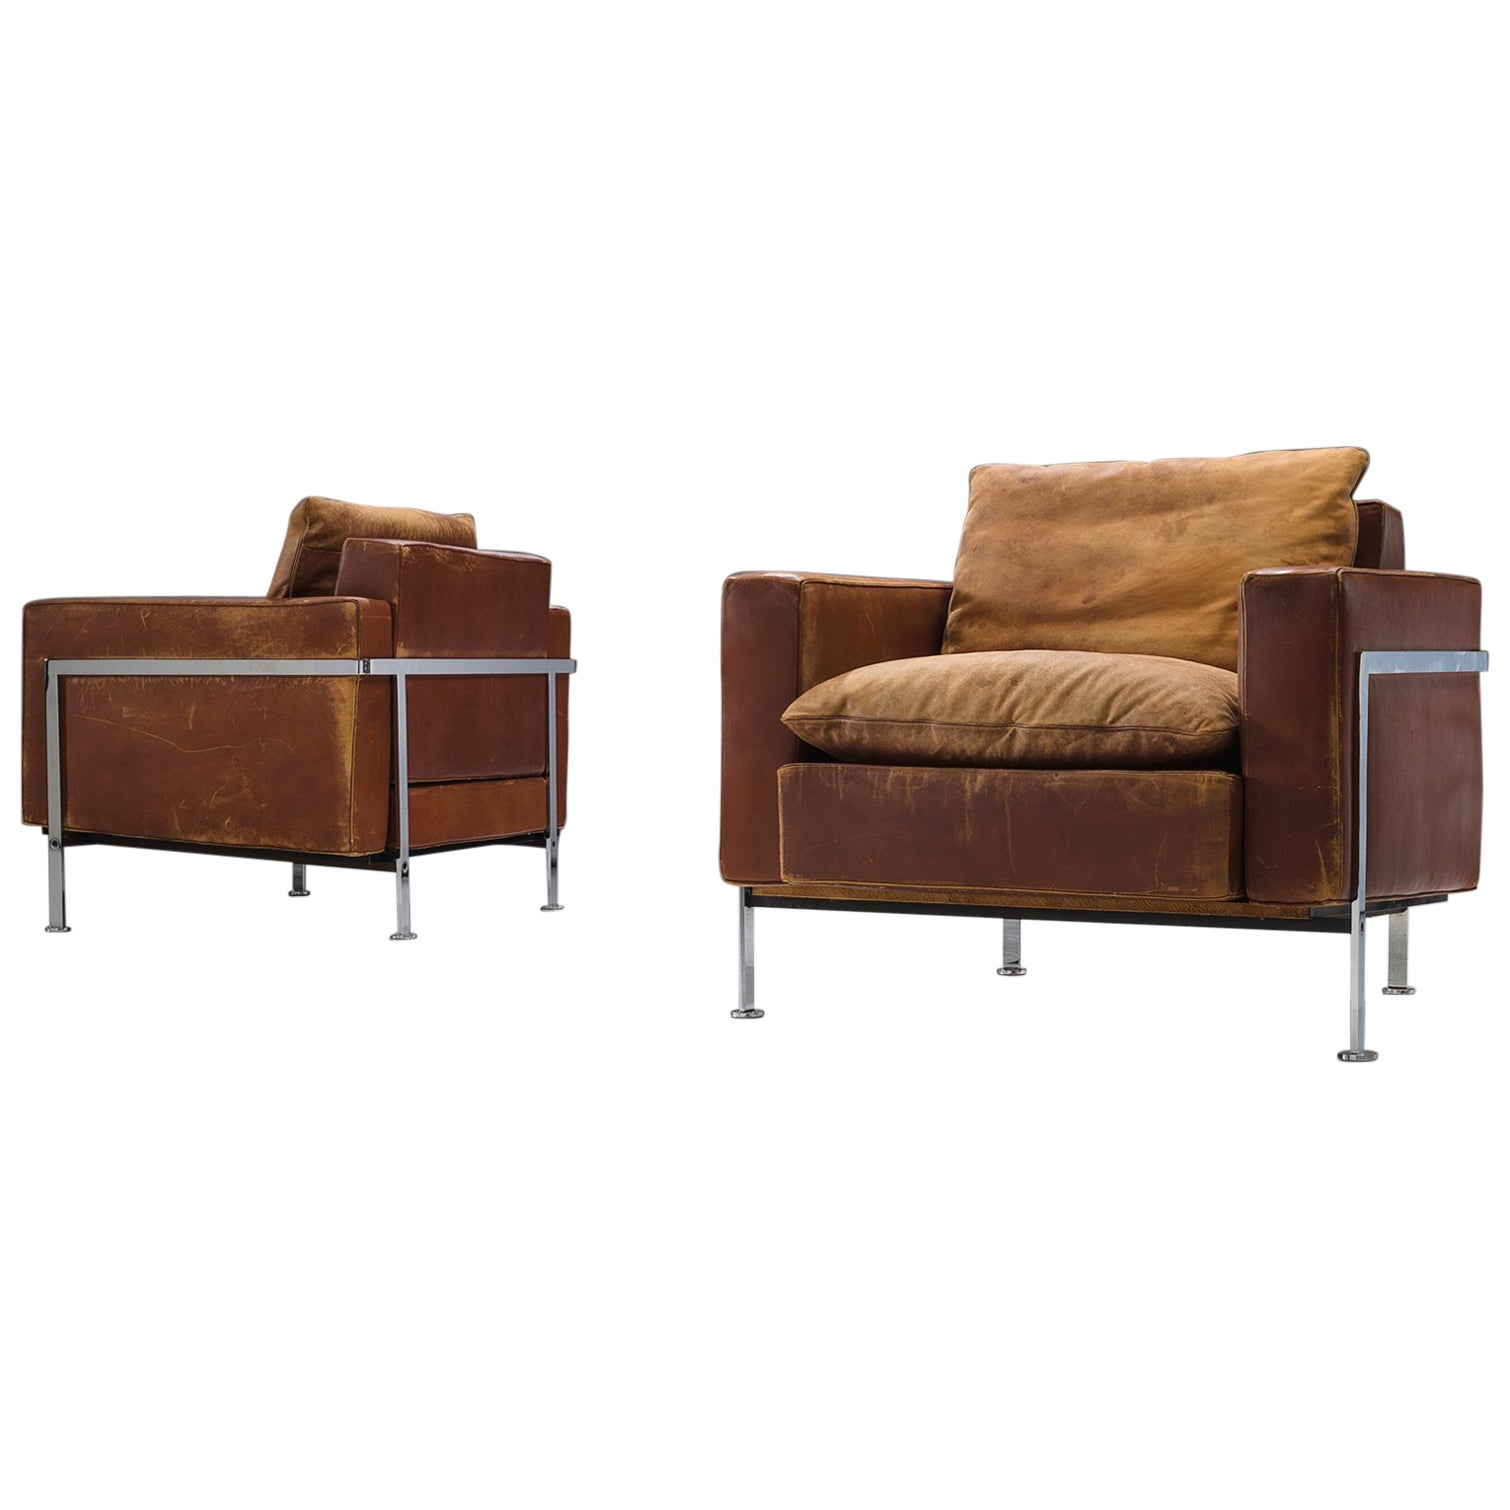 Leather Lounge Robert Hausmann Pair Of Cognac Leather Lounge Chairs For De Sede